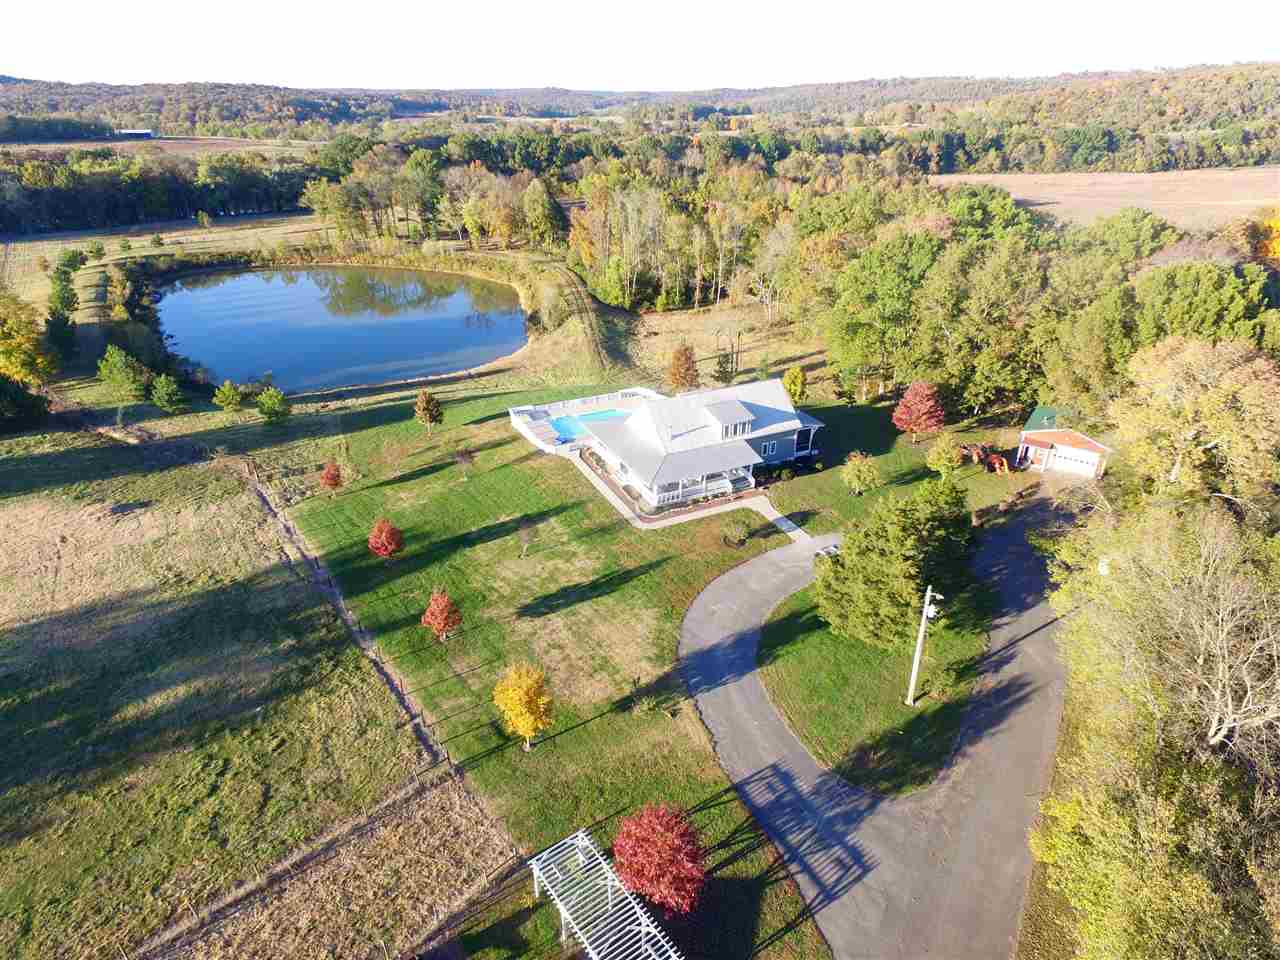 Gorgeous 106 acres with 4 bedroom, 3.5 bath modern home with a full heated and cooled walk out basement, including a huge in ground salt water pool, 3+ acre lake with fish, frontage on Barren River, pastures, run in shed for cattle, fencing, great hunting, very private and secluded yet only 5 - 7 minutes from down town Bowling Green, baseball stadium, WKU, restaurants, Natcher Parkway, shopping. This is a must see property.